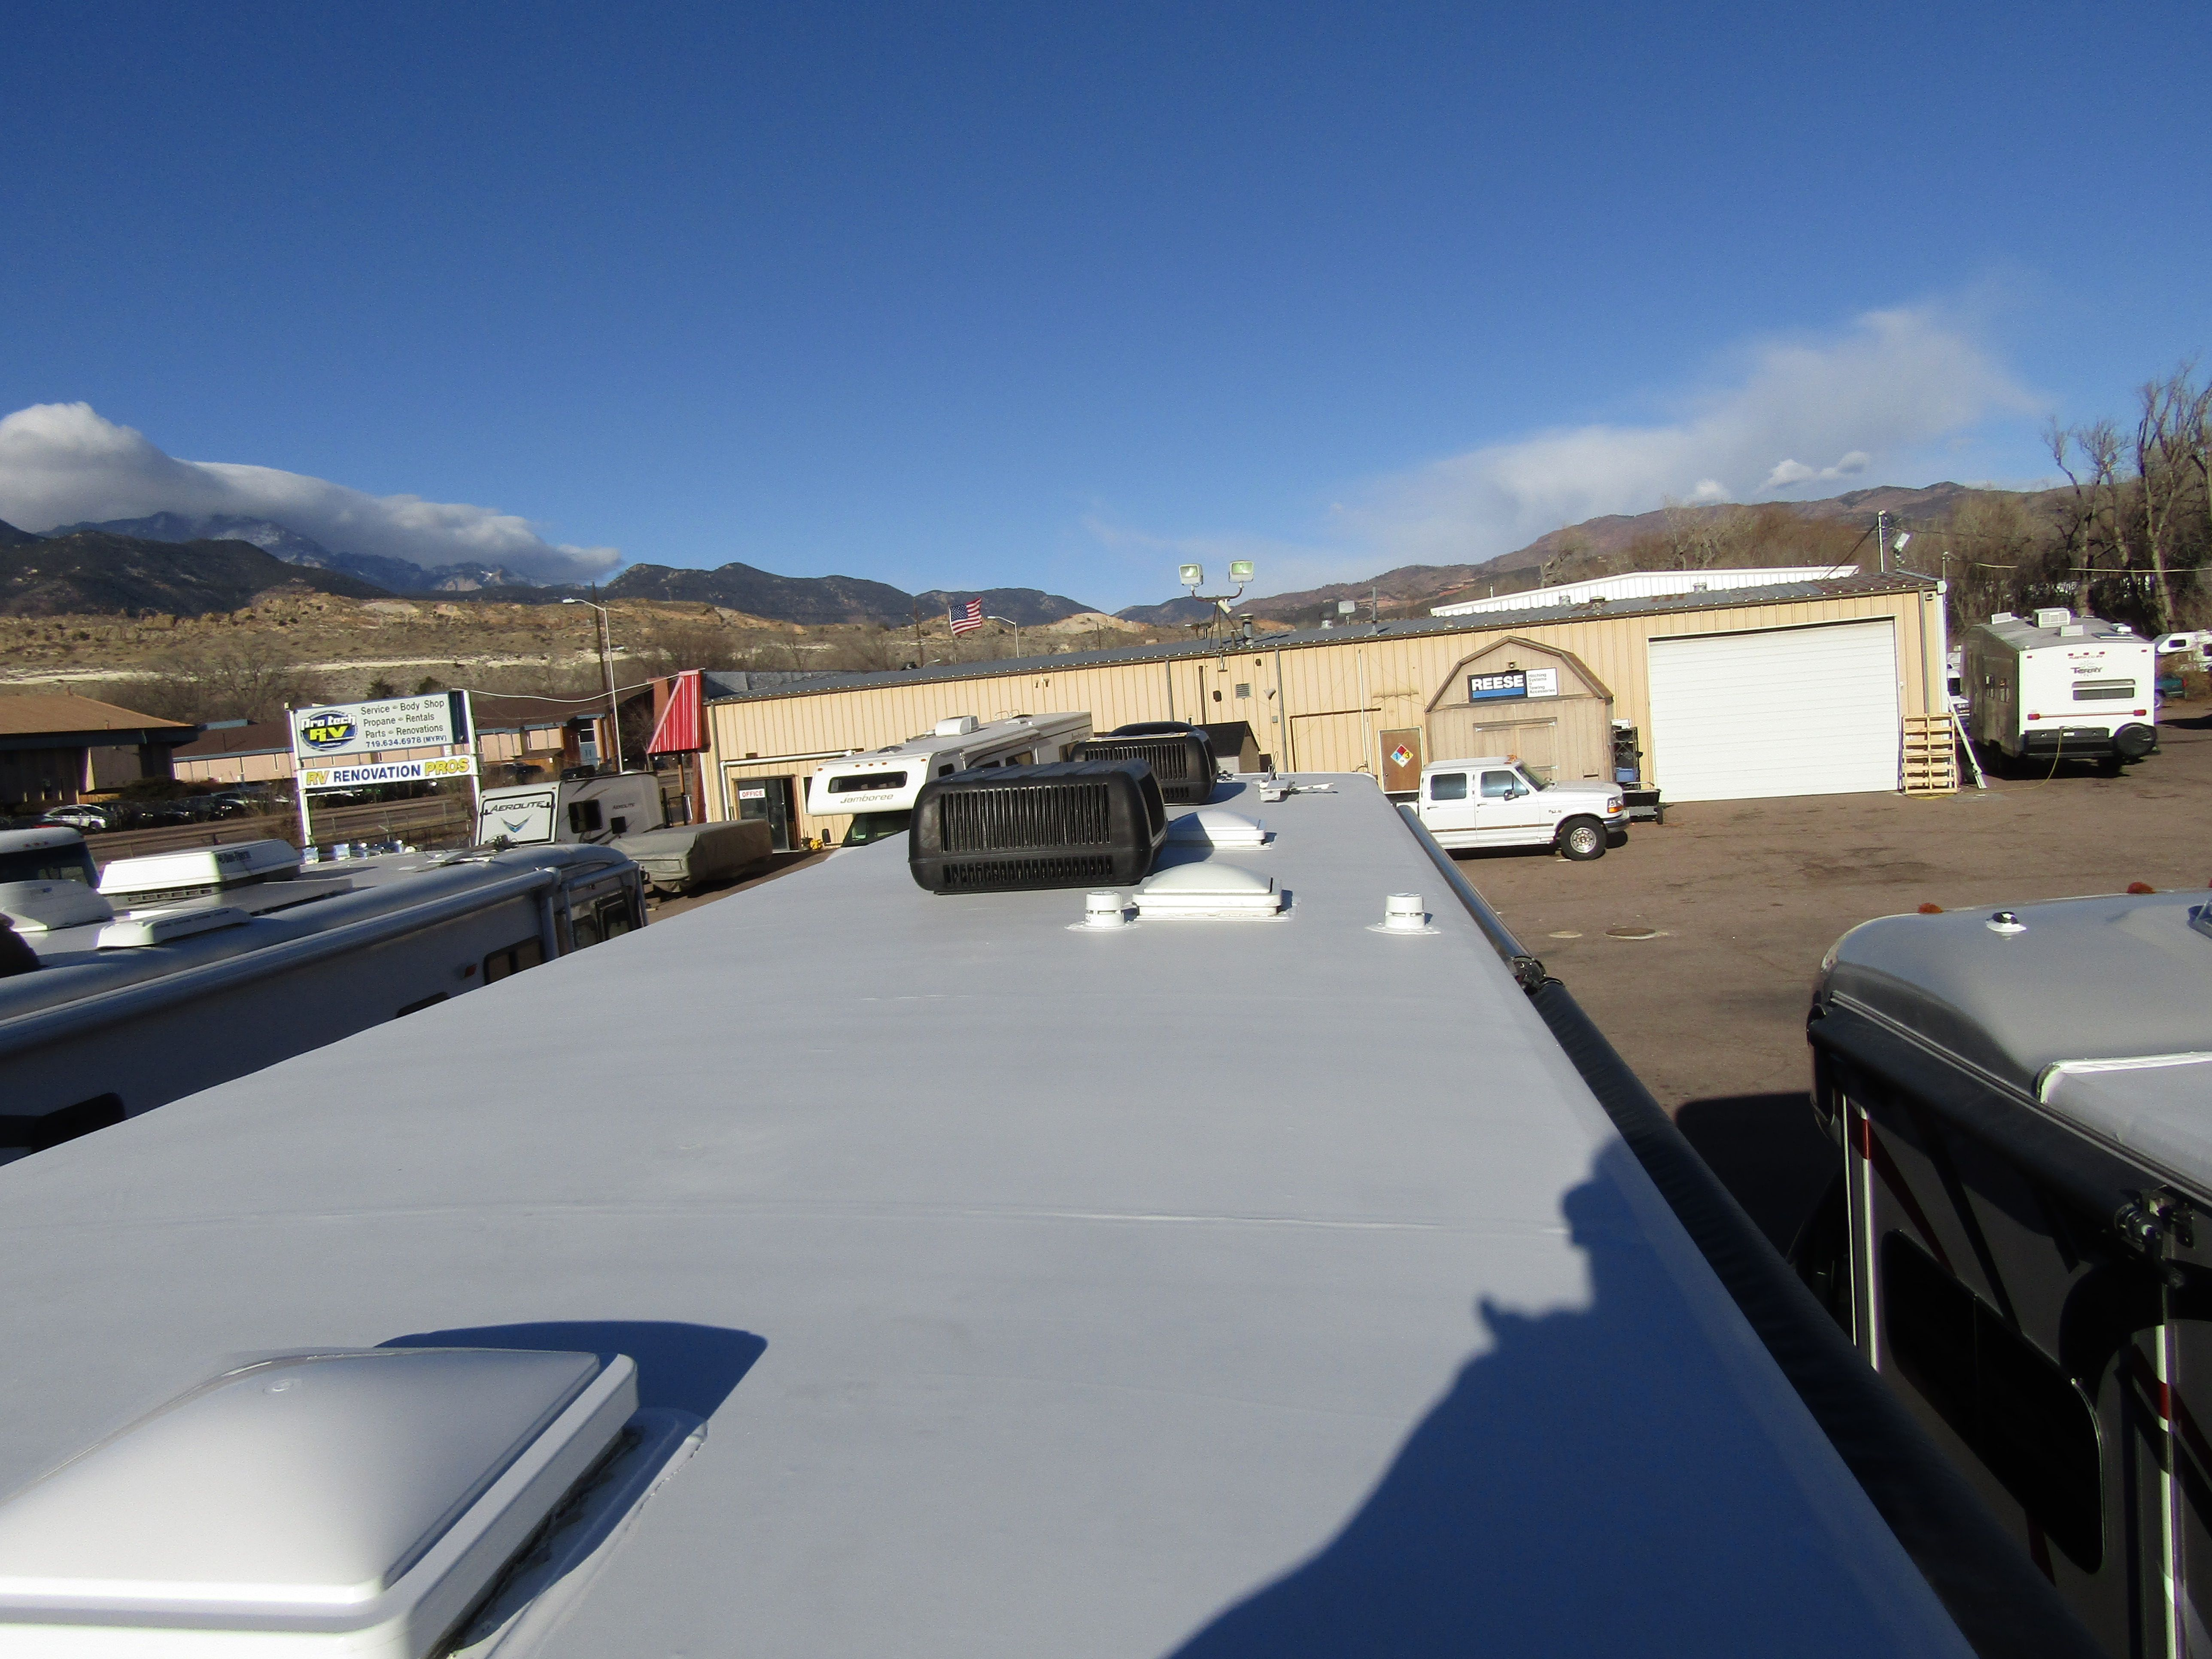 Hail damaged this roof but we were able to go through